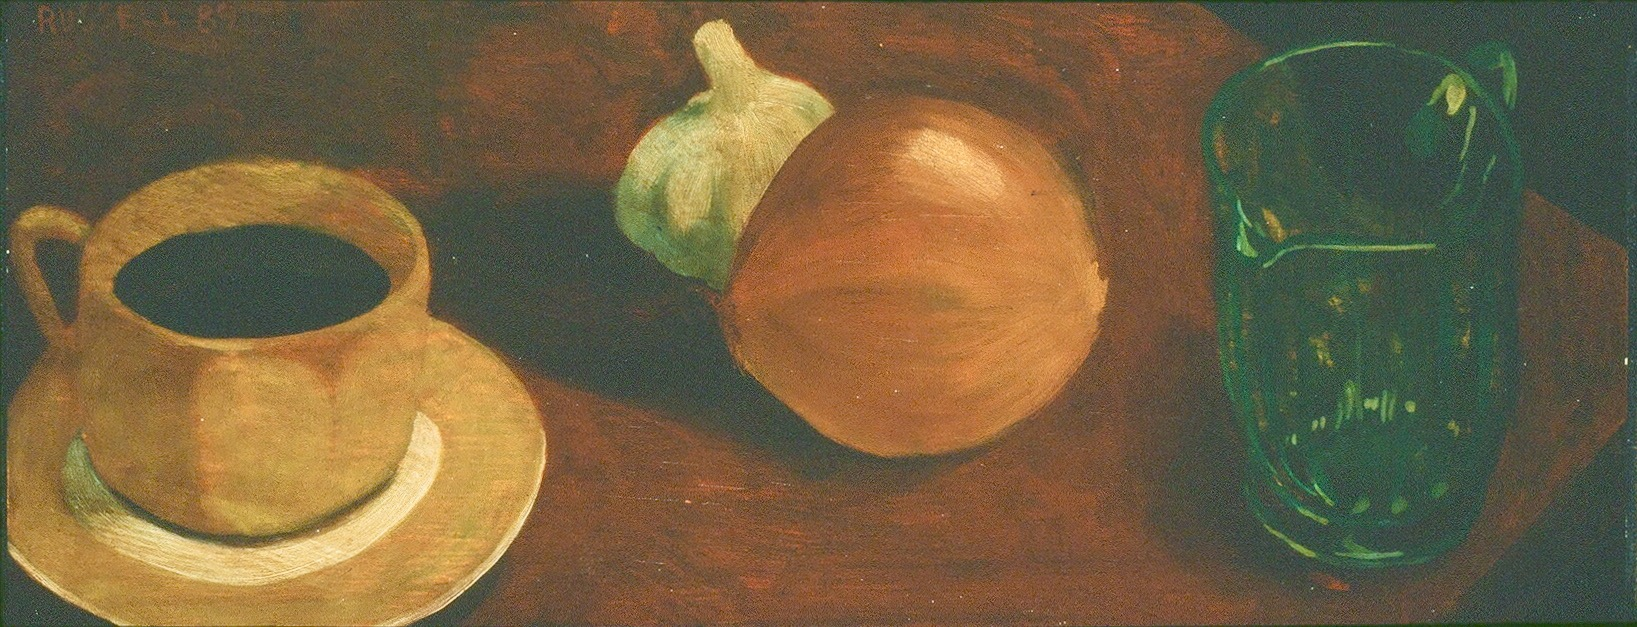 Untitled 1989 17X46 cm. Oil on wood.